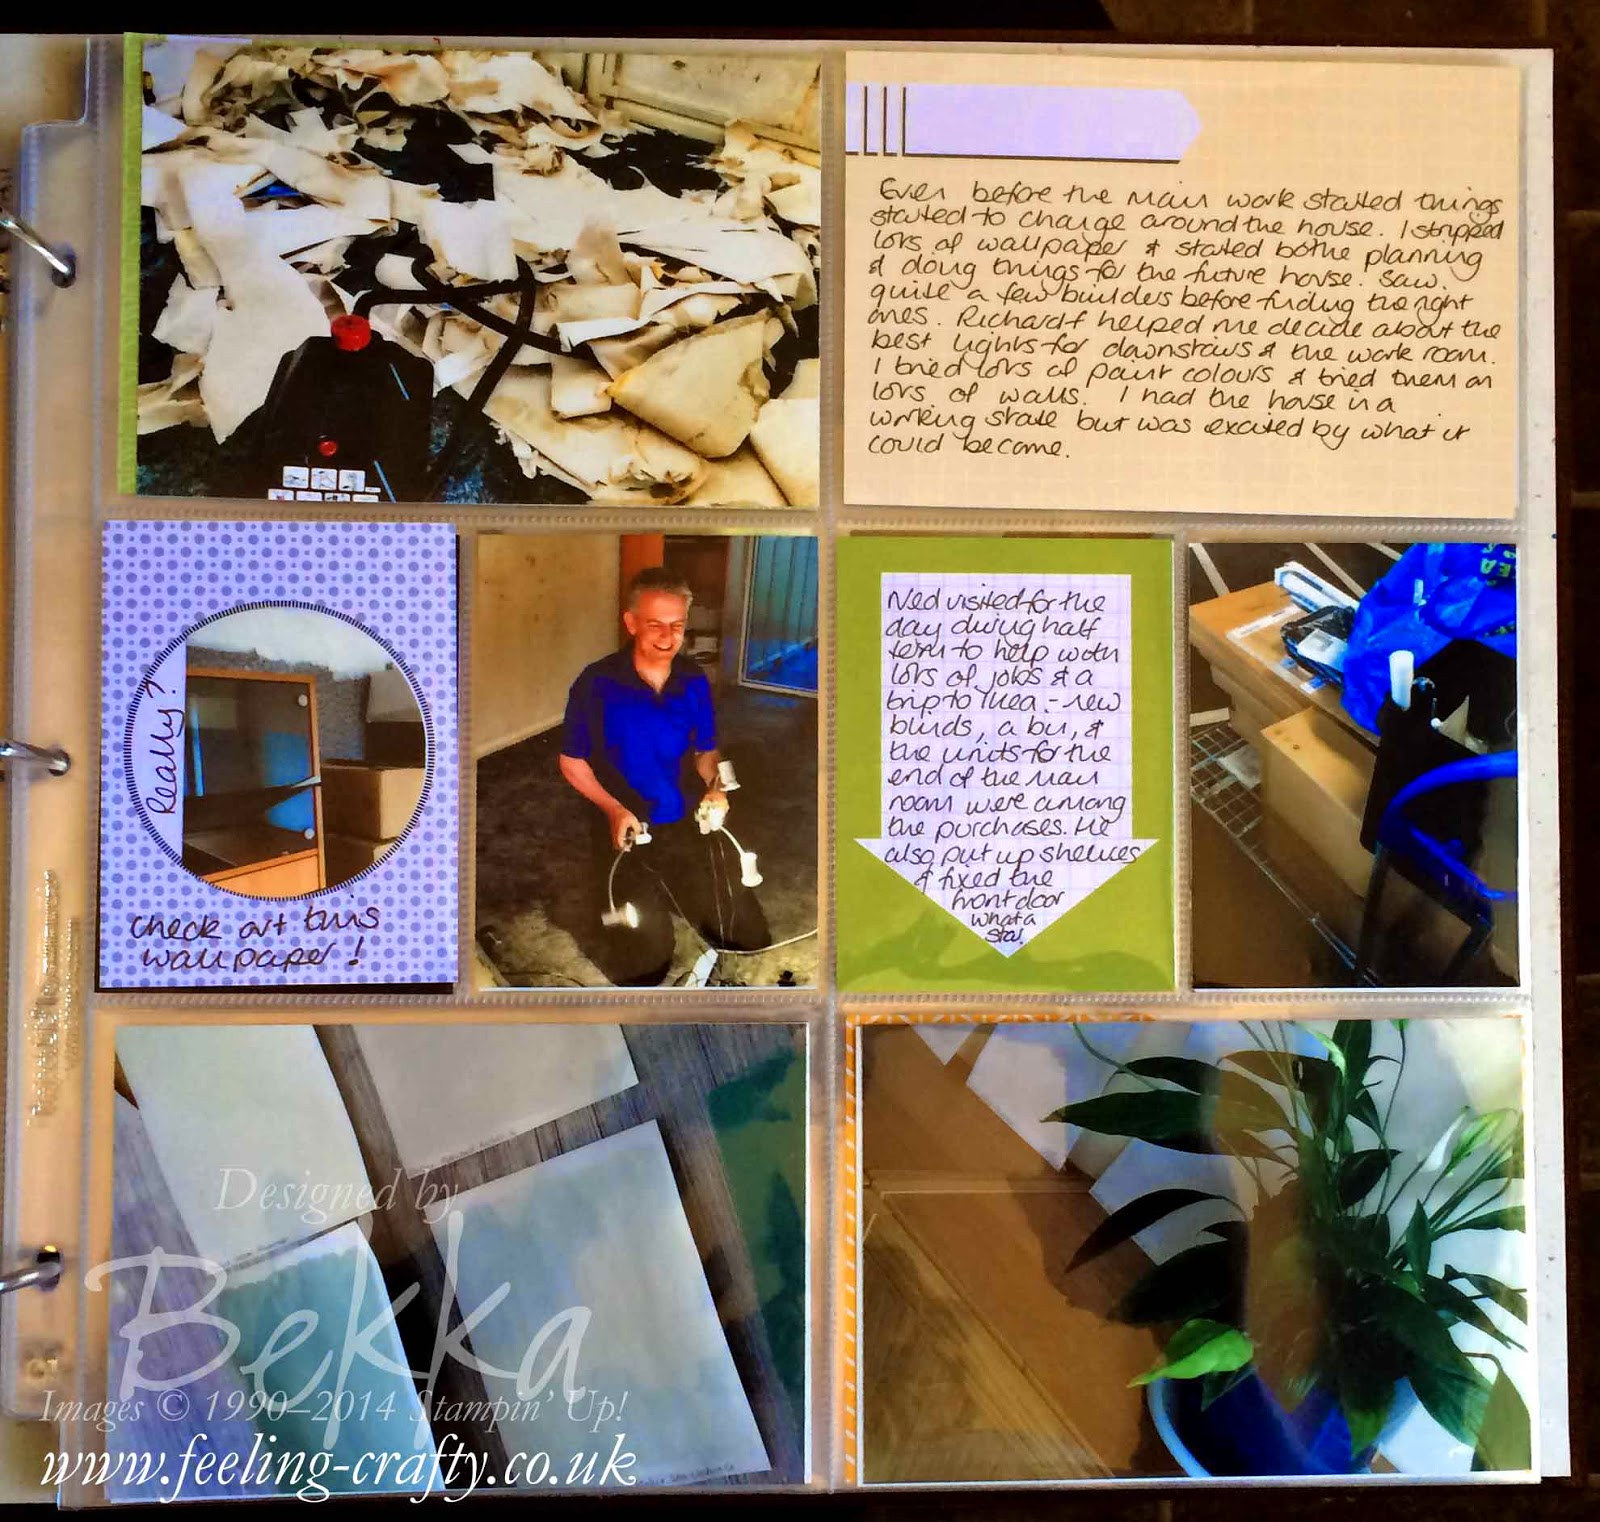 Project Life by Stampin' Up! Pages showing a house renovation project by Bekka check it out here